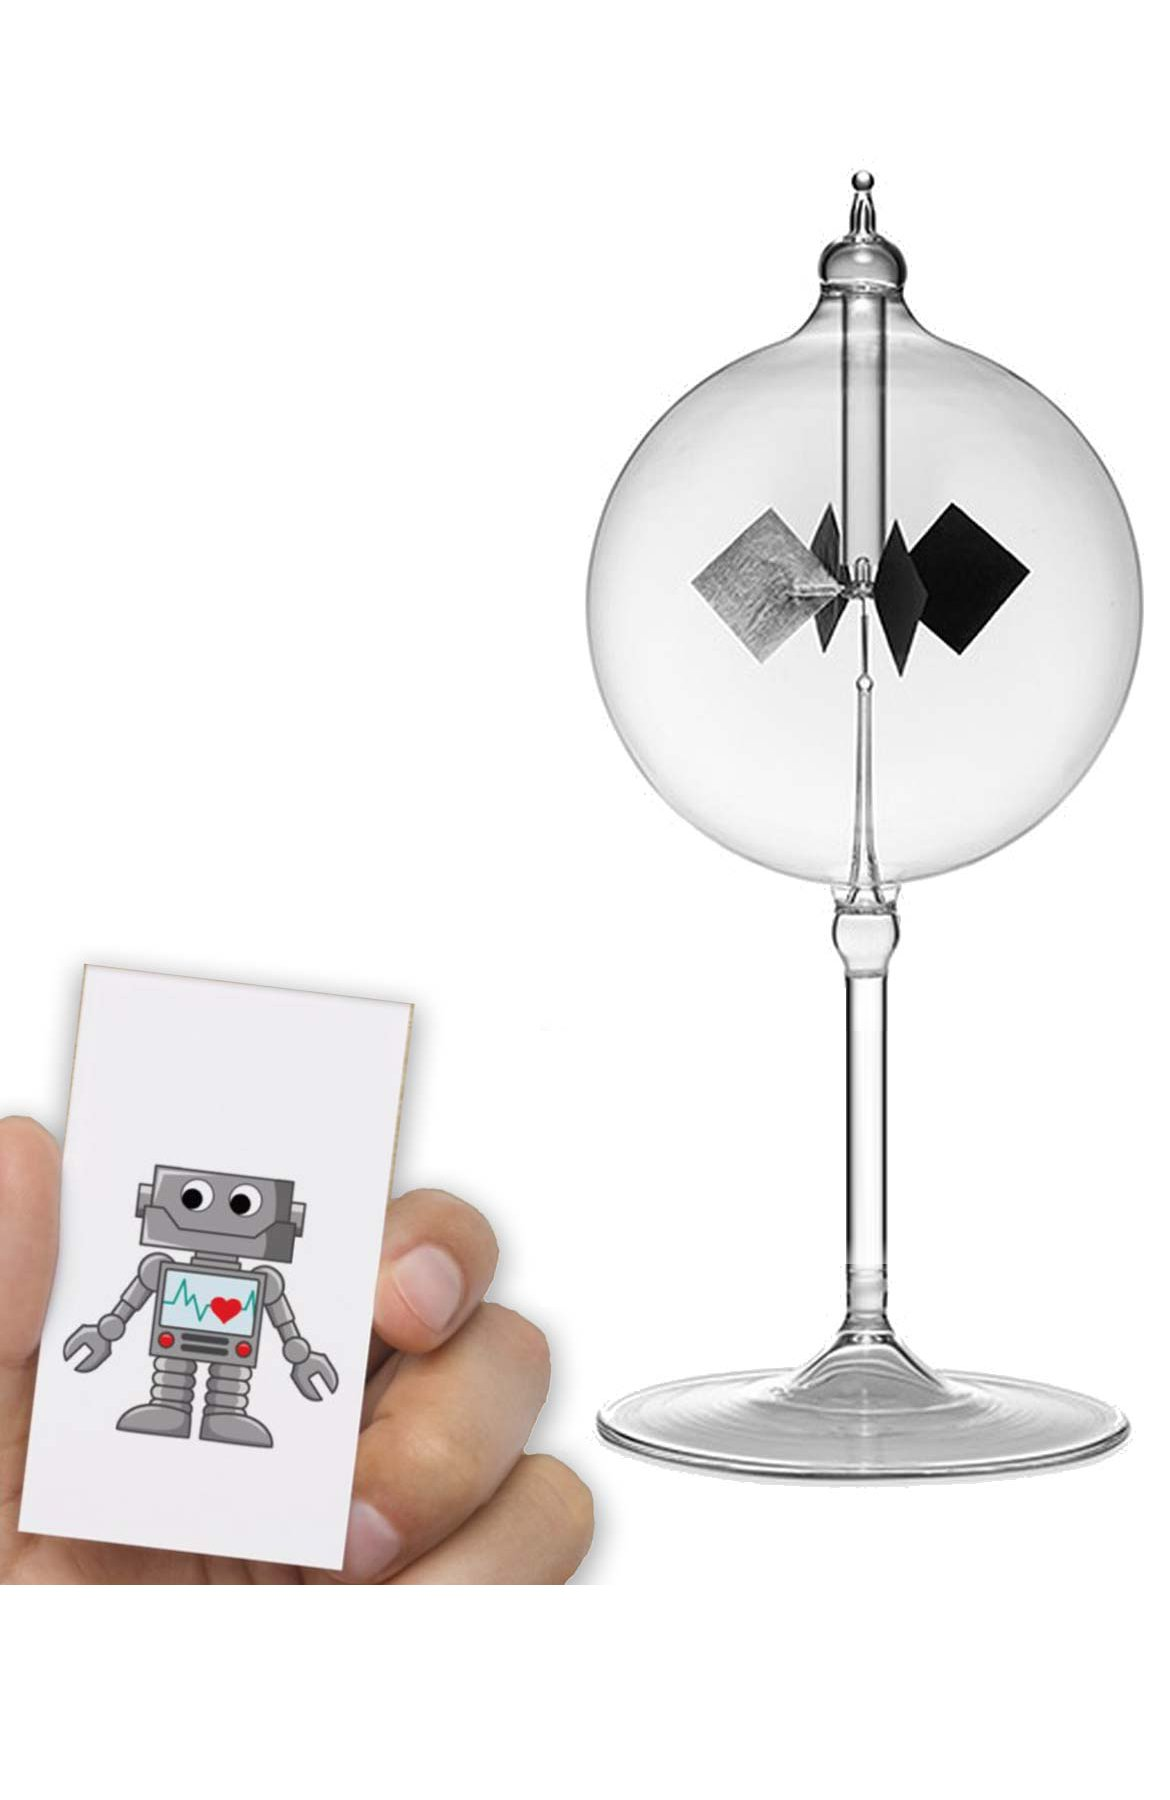 Radiometer Solar Spinning Diamond - Powered by The Sun (Free Robot Card Included)